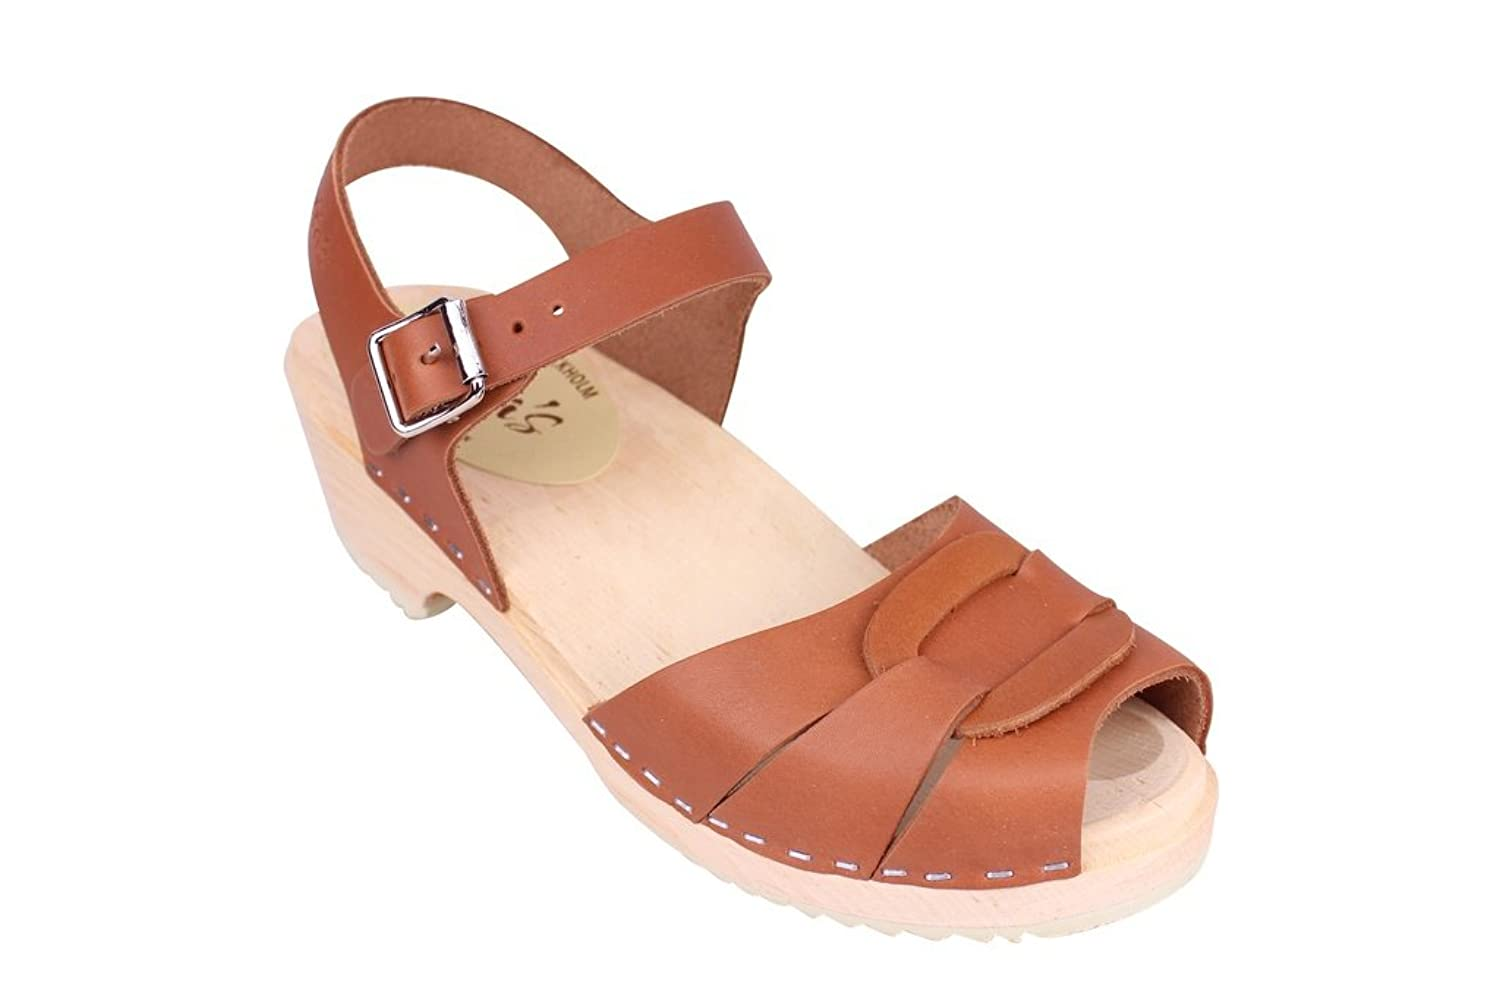 Lotta From Stockholm Swedish Clogs : Low Heel Peep Toe Clogs in Tan Leather